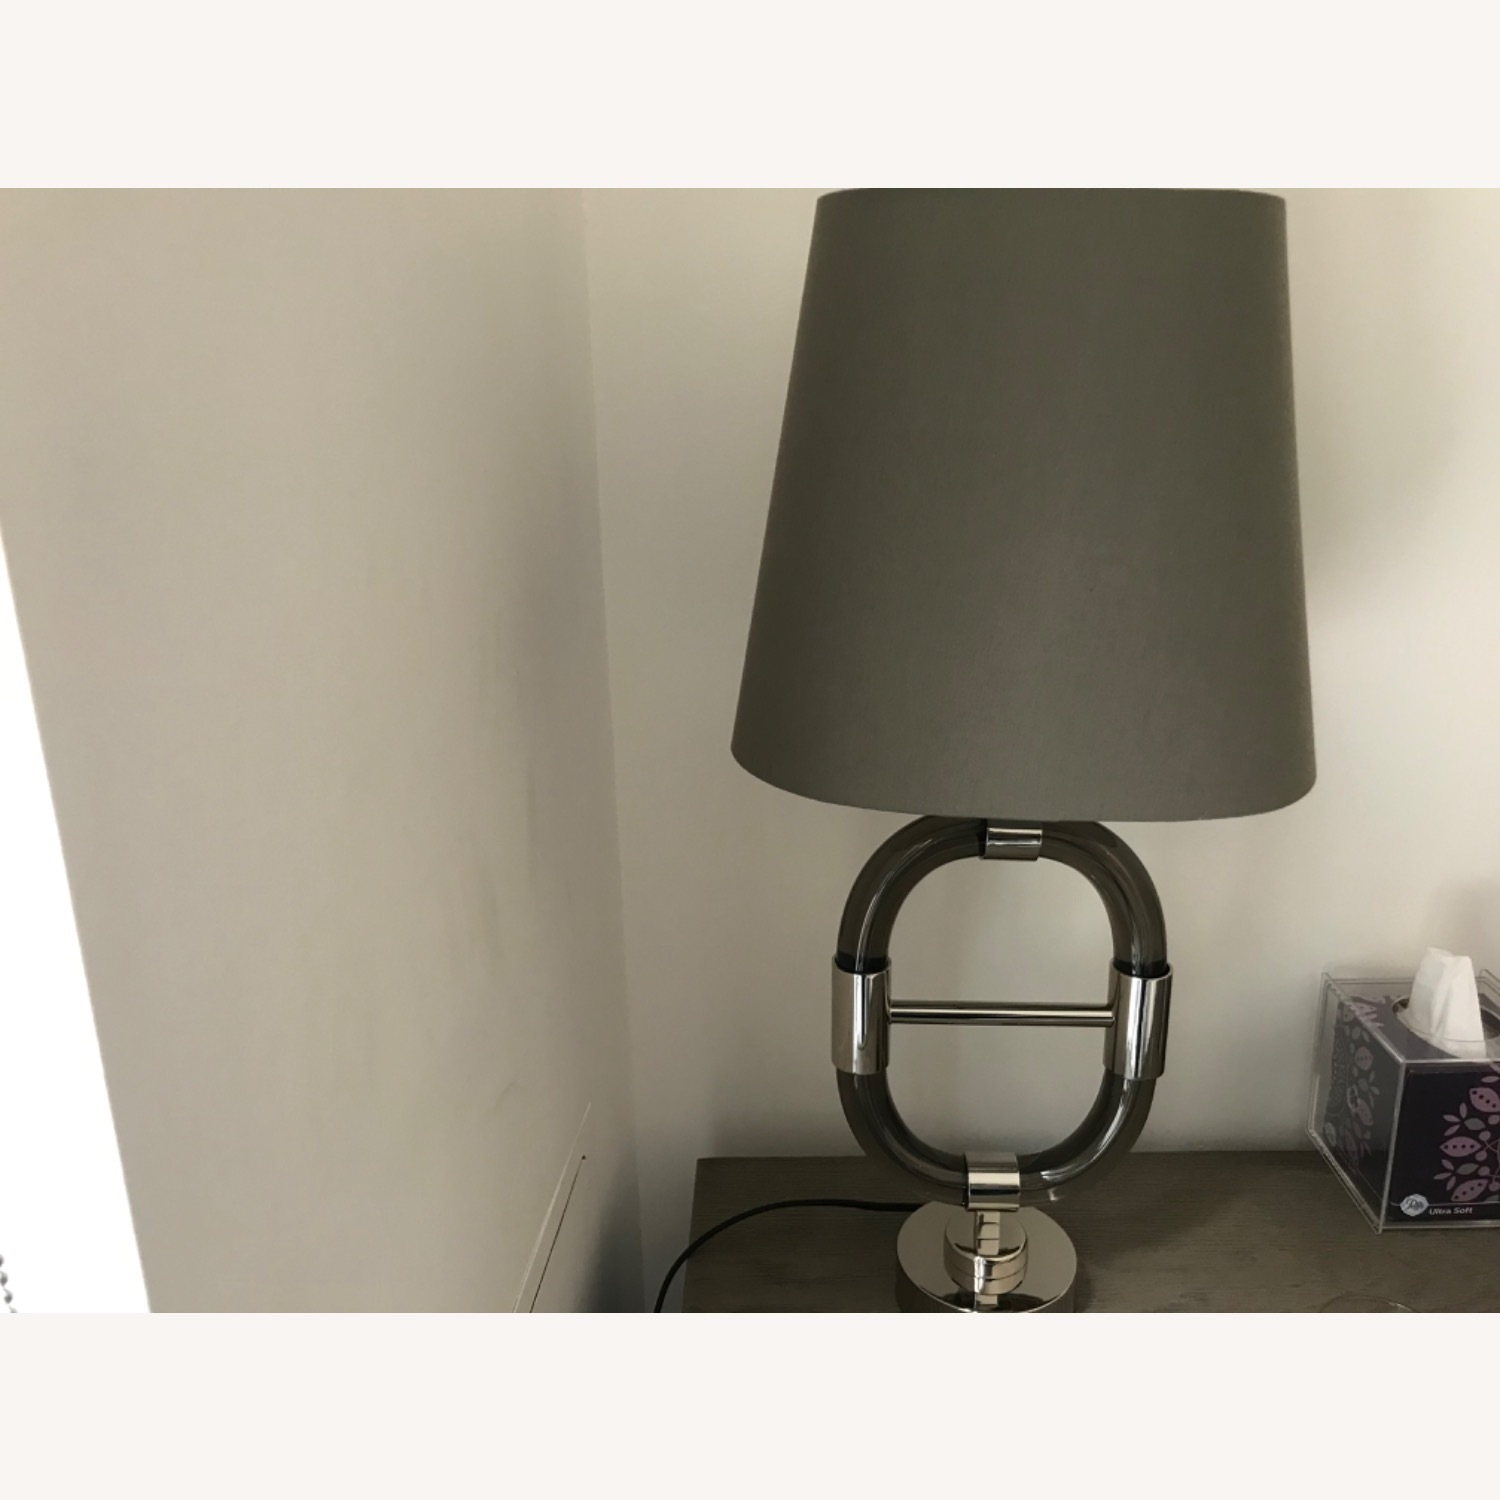 Jonathan Adler Jacques Capsule Table Lamps - image-2